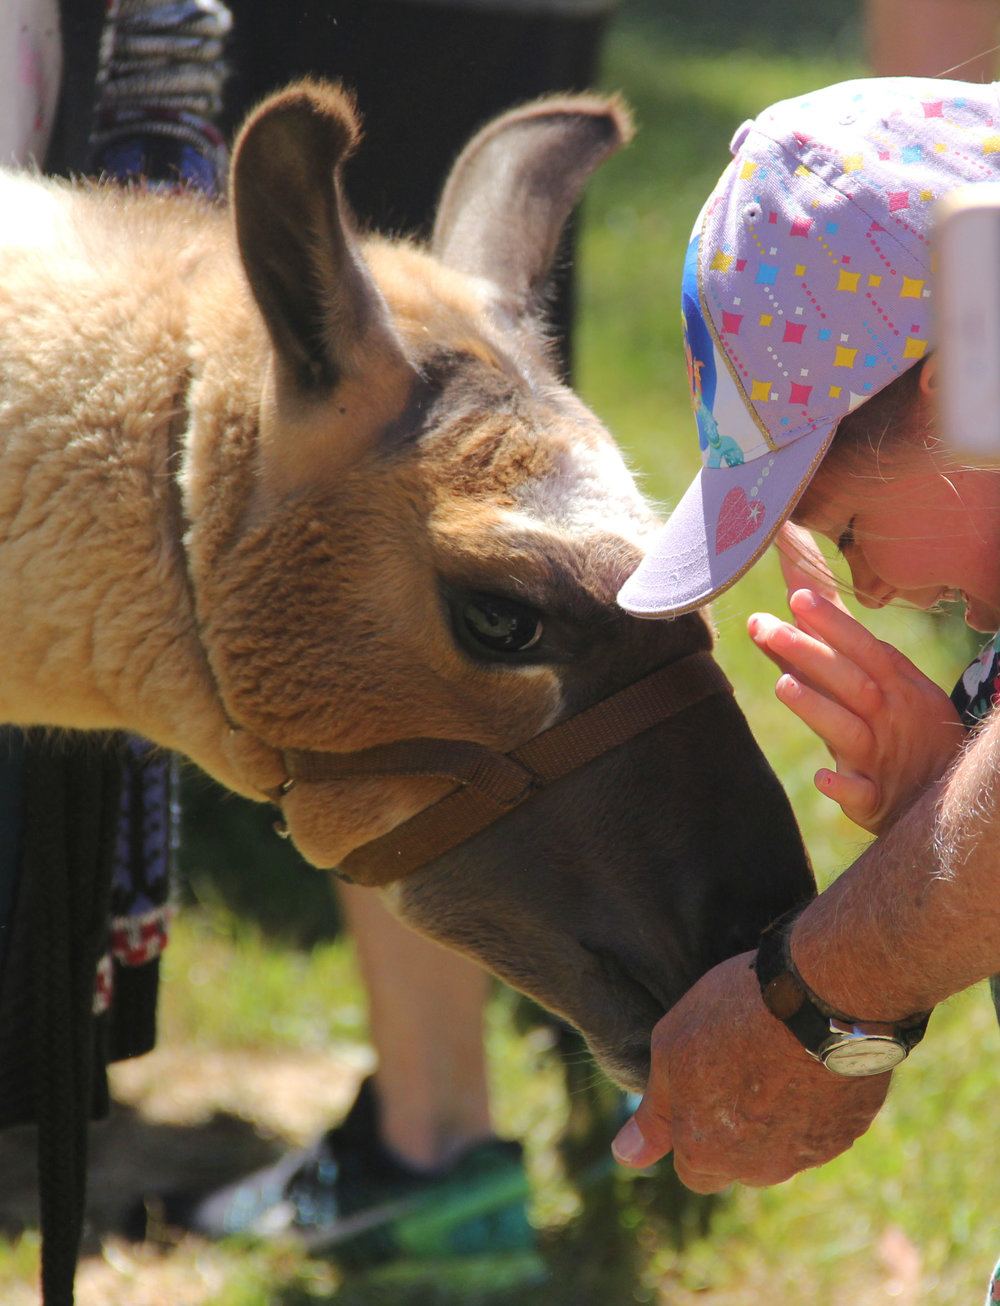 Sponsor a Llama - We need your help! Make a donation to support the work of Llamas of Circle Home. By donating you will help us to take care of our llamas to keep sharing their medicine with other people.